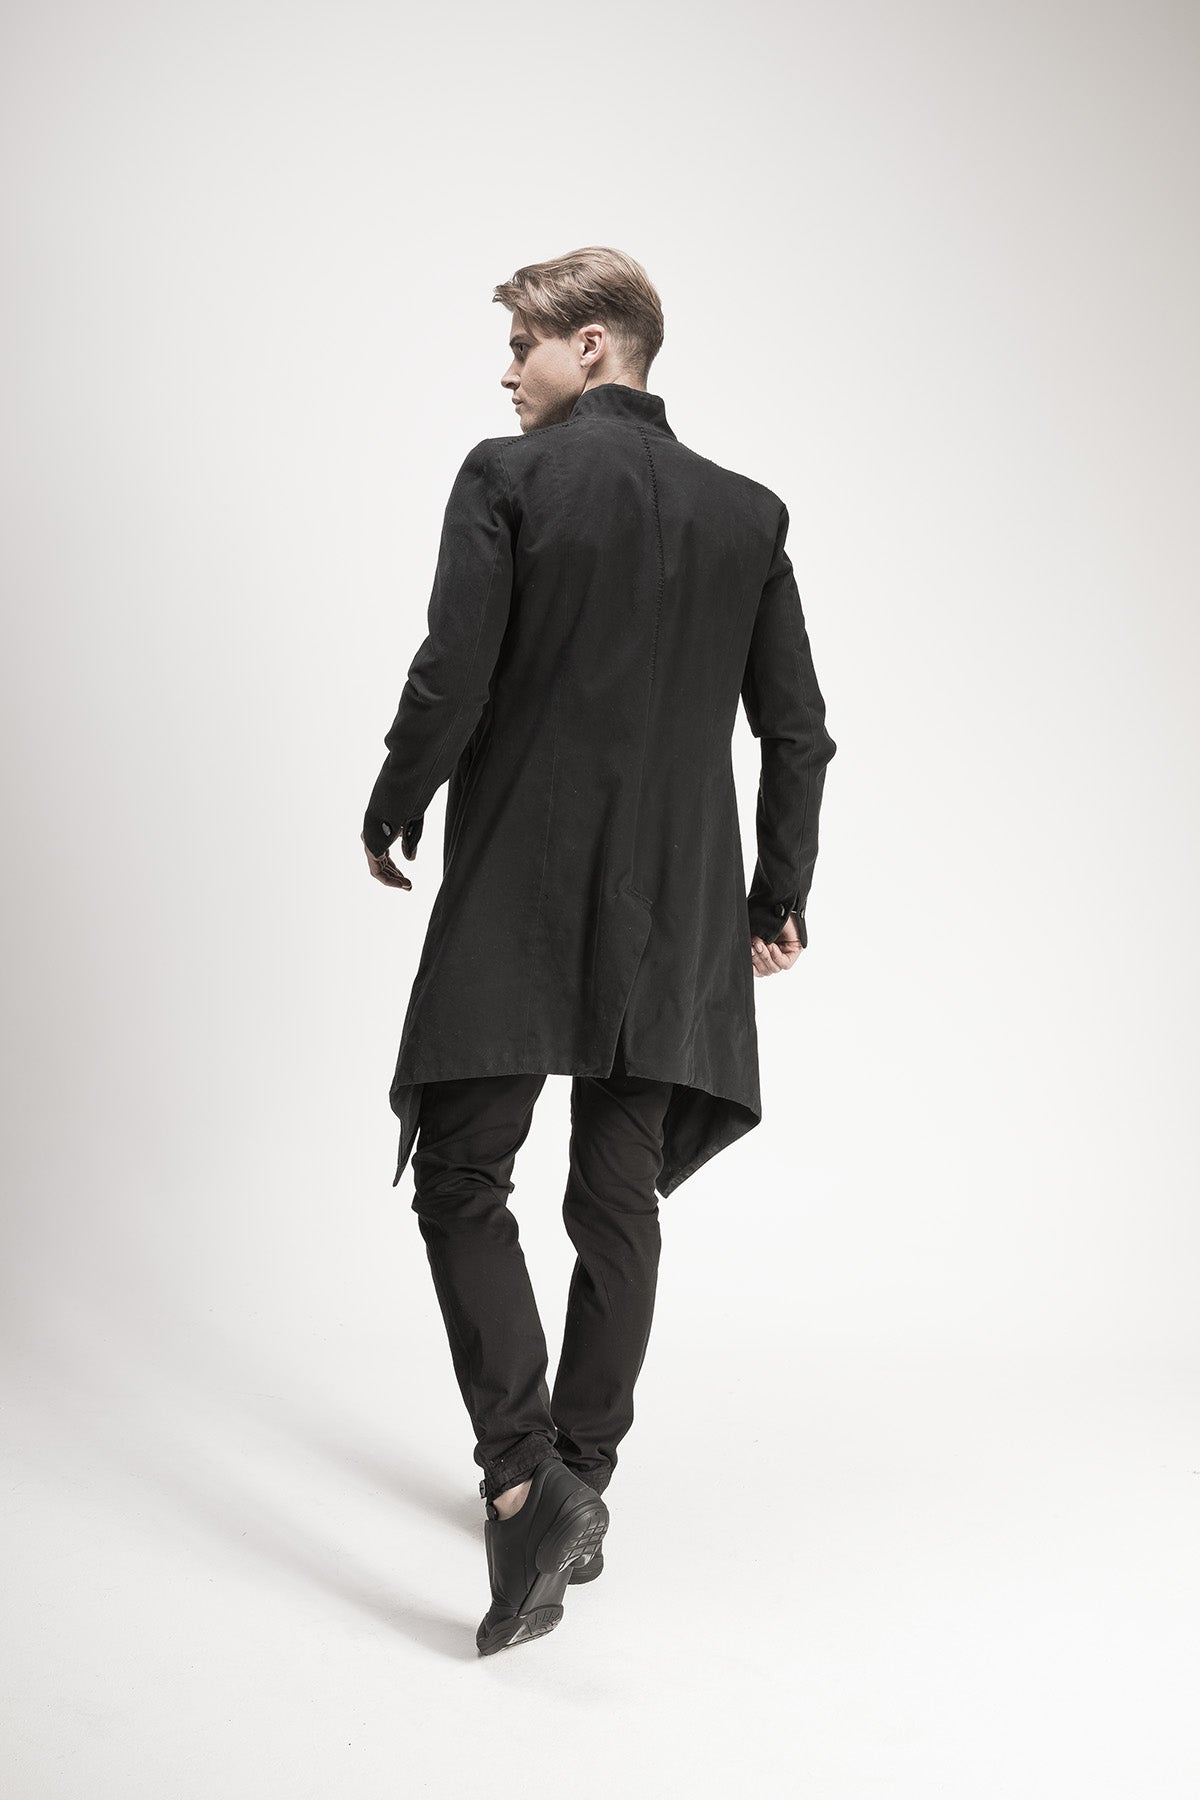 Barbarossa Moratti | Men's Avant-Garde Fashion Blazer Jacket